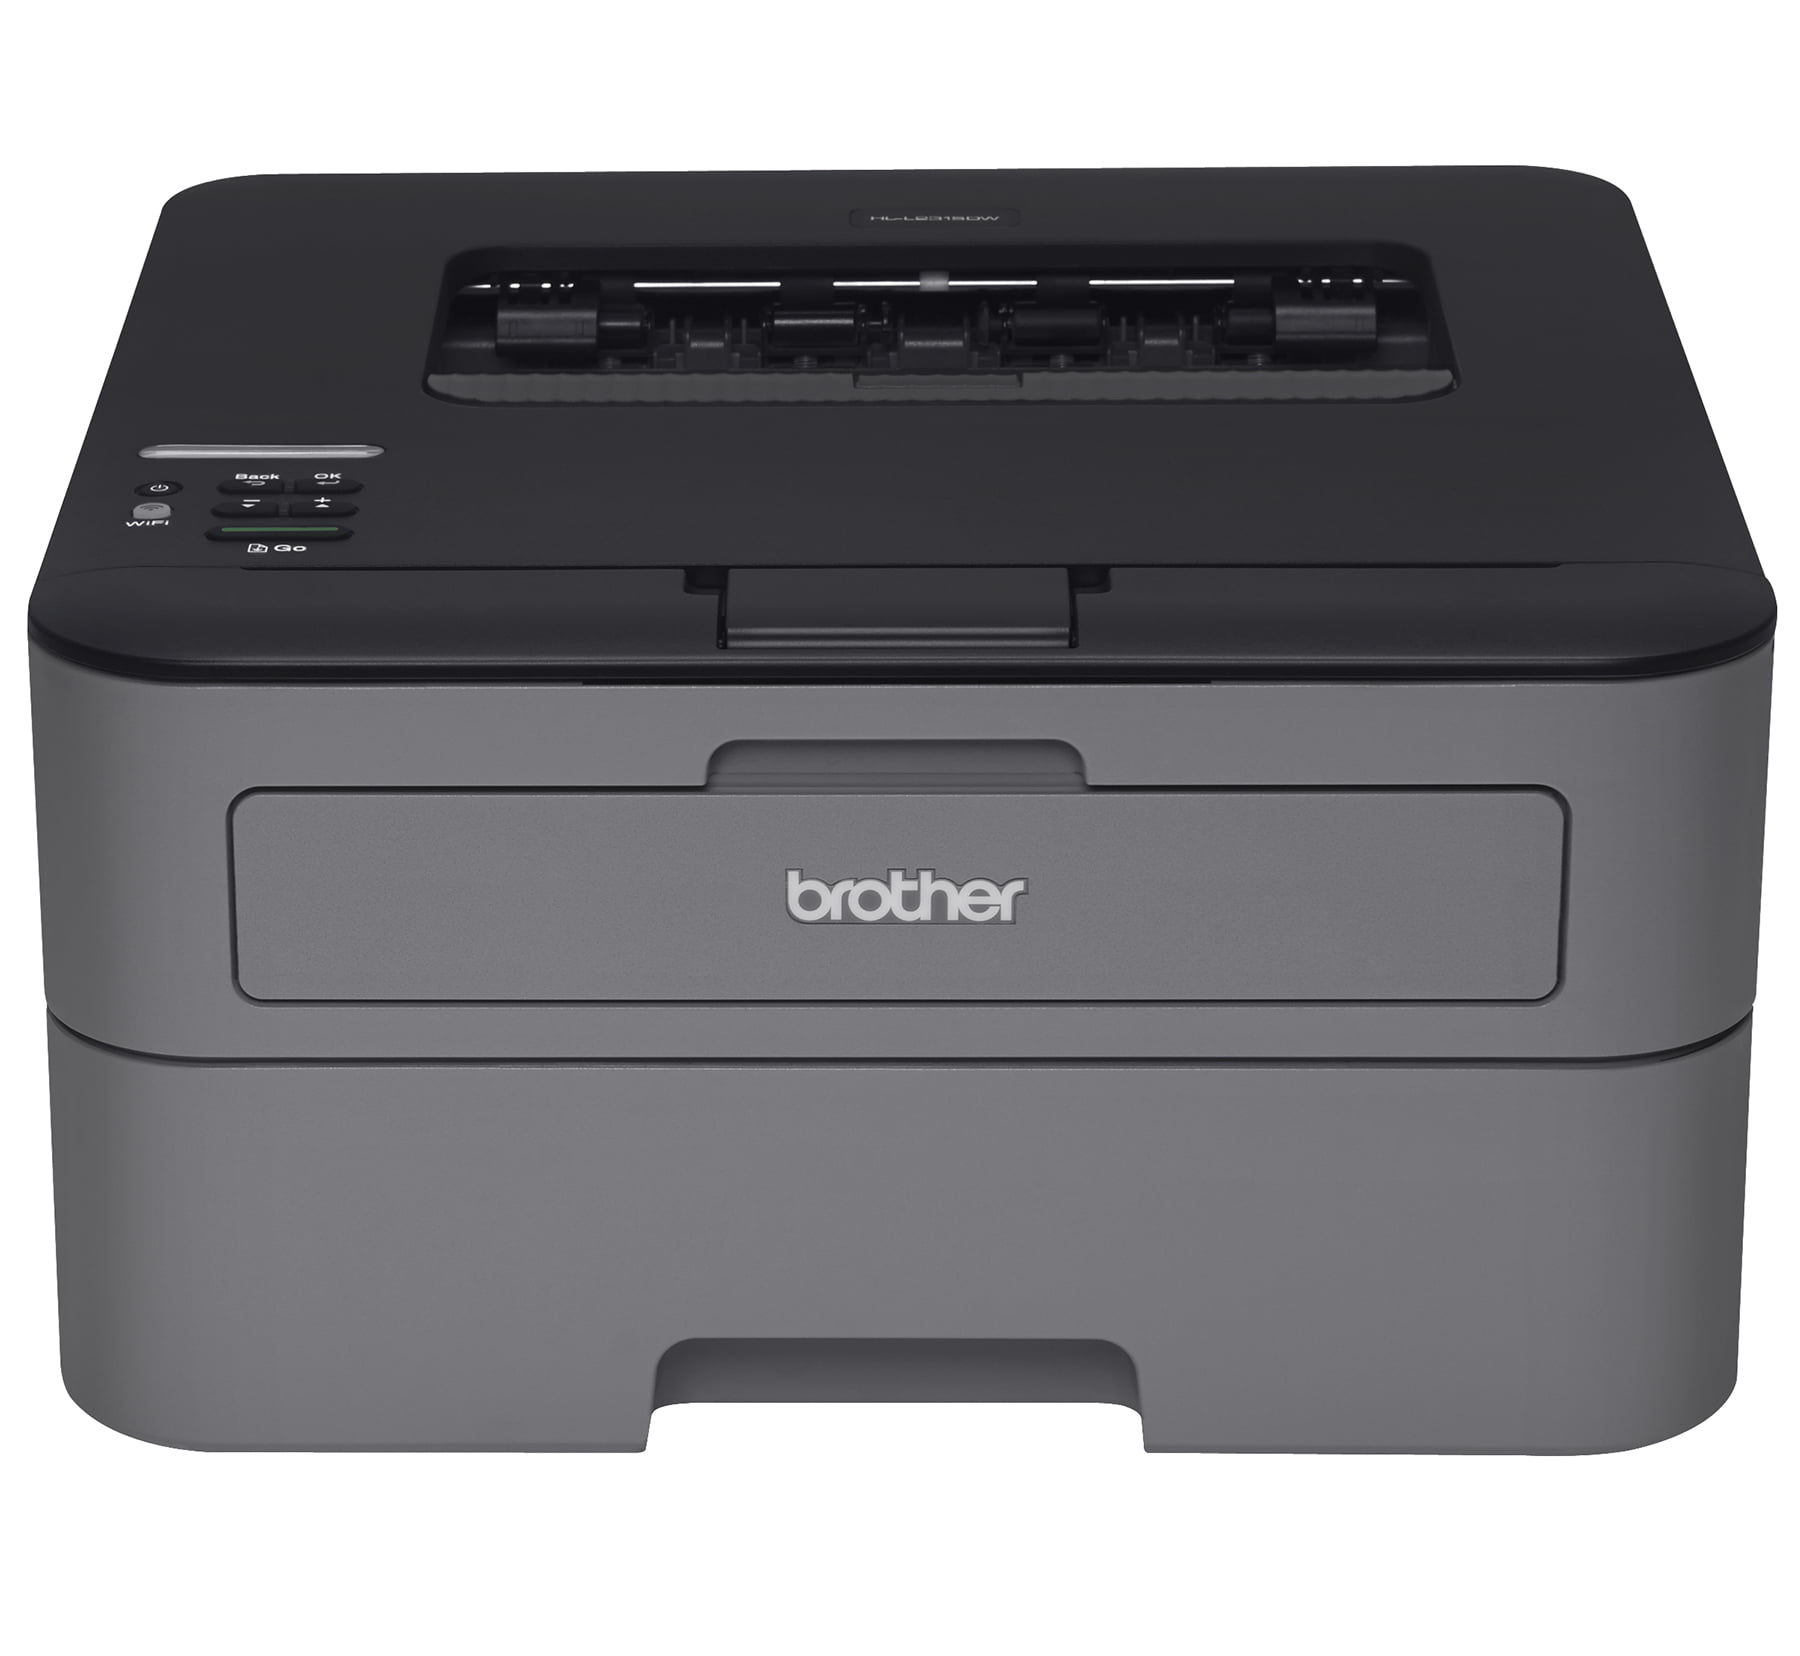 Brother HL-L2315DW Monochrome Laser Printer - Walmart.com